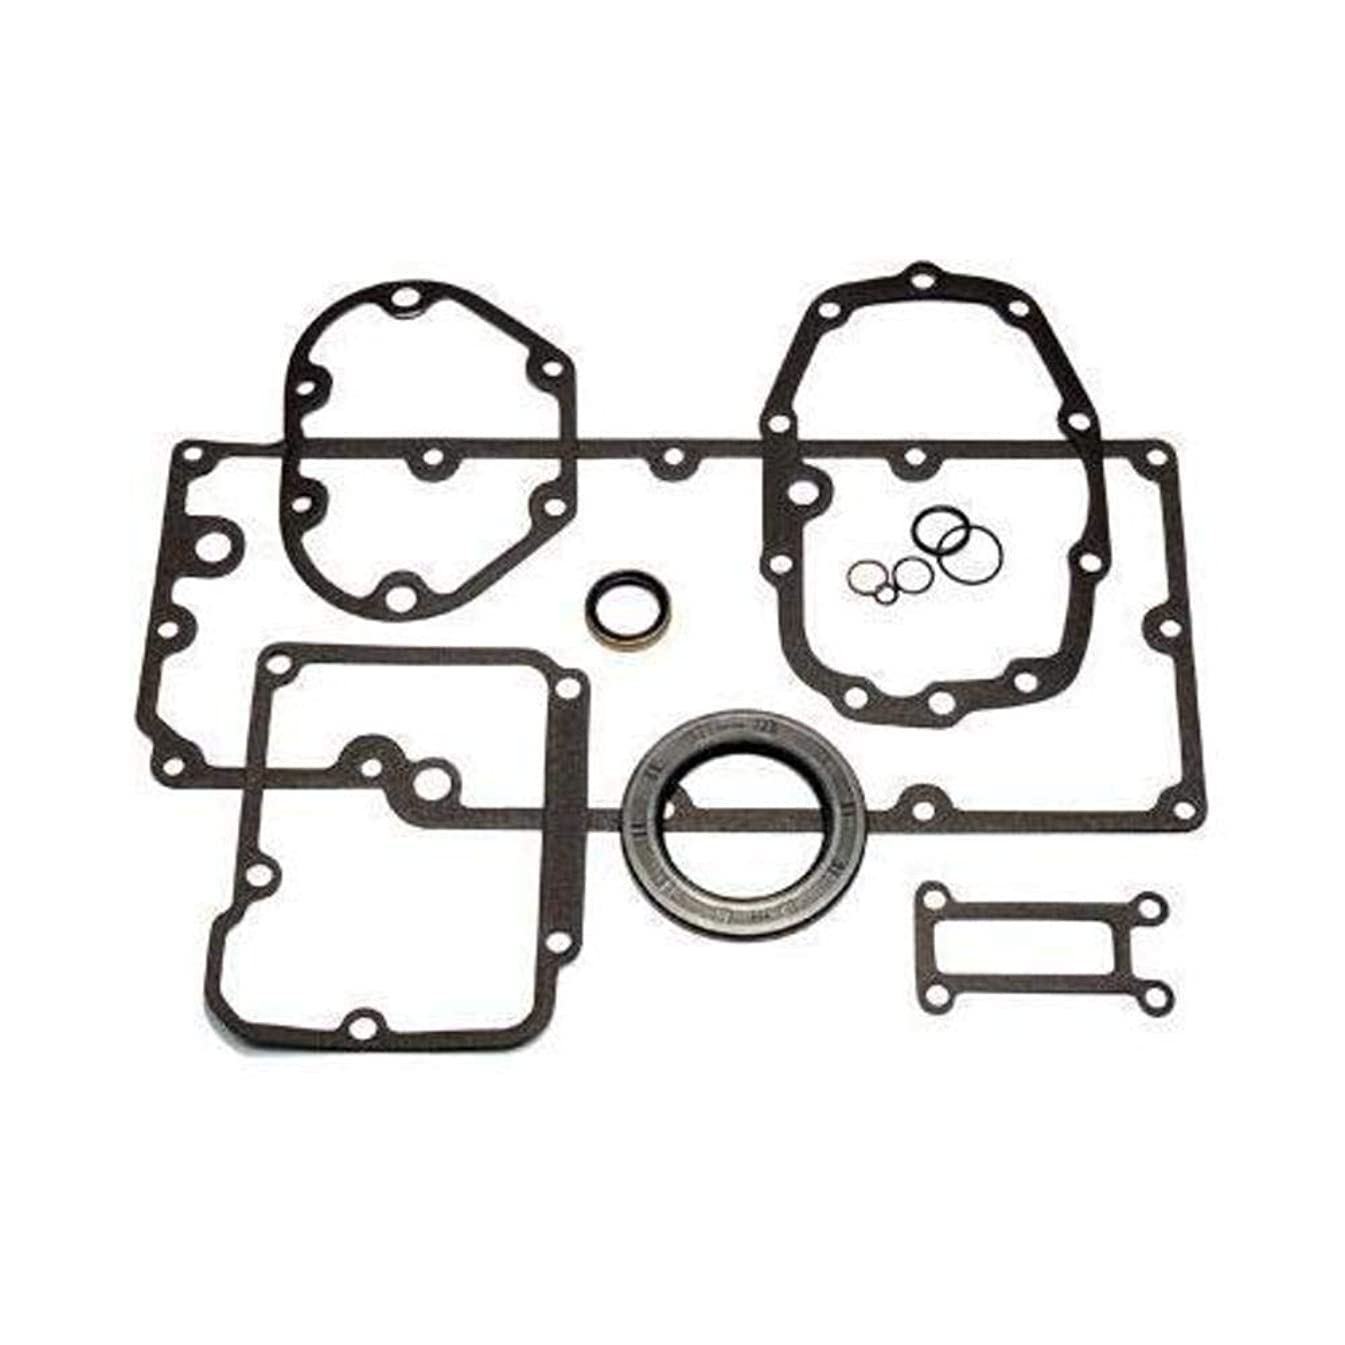 Cometic C9639 Complete Transmission Gasket/Seal/O-Ring Set